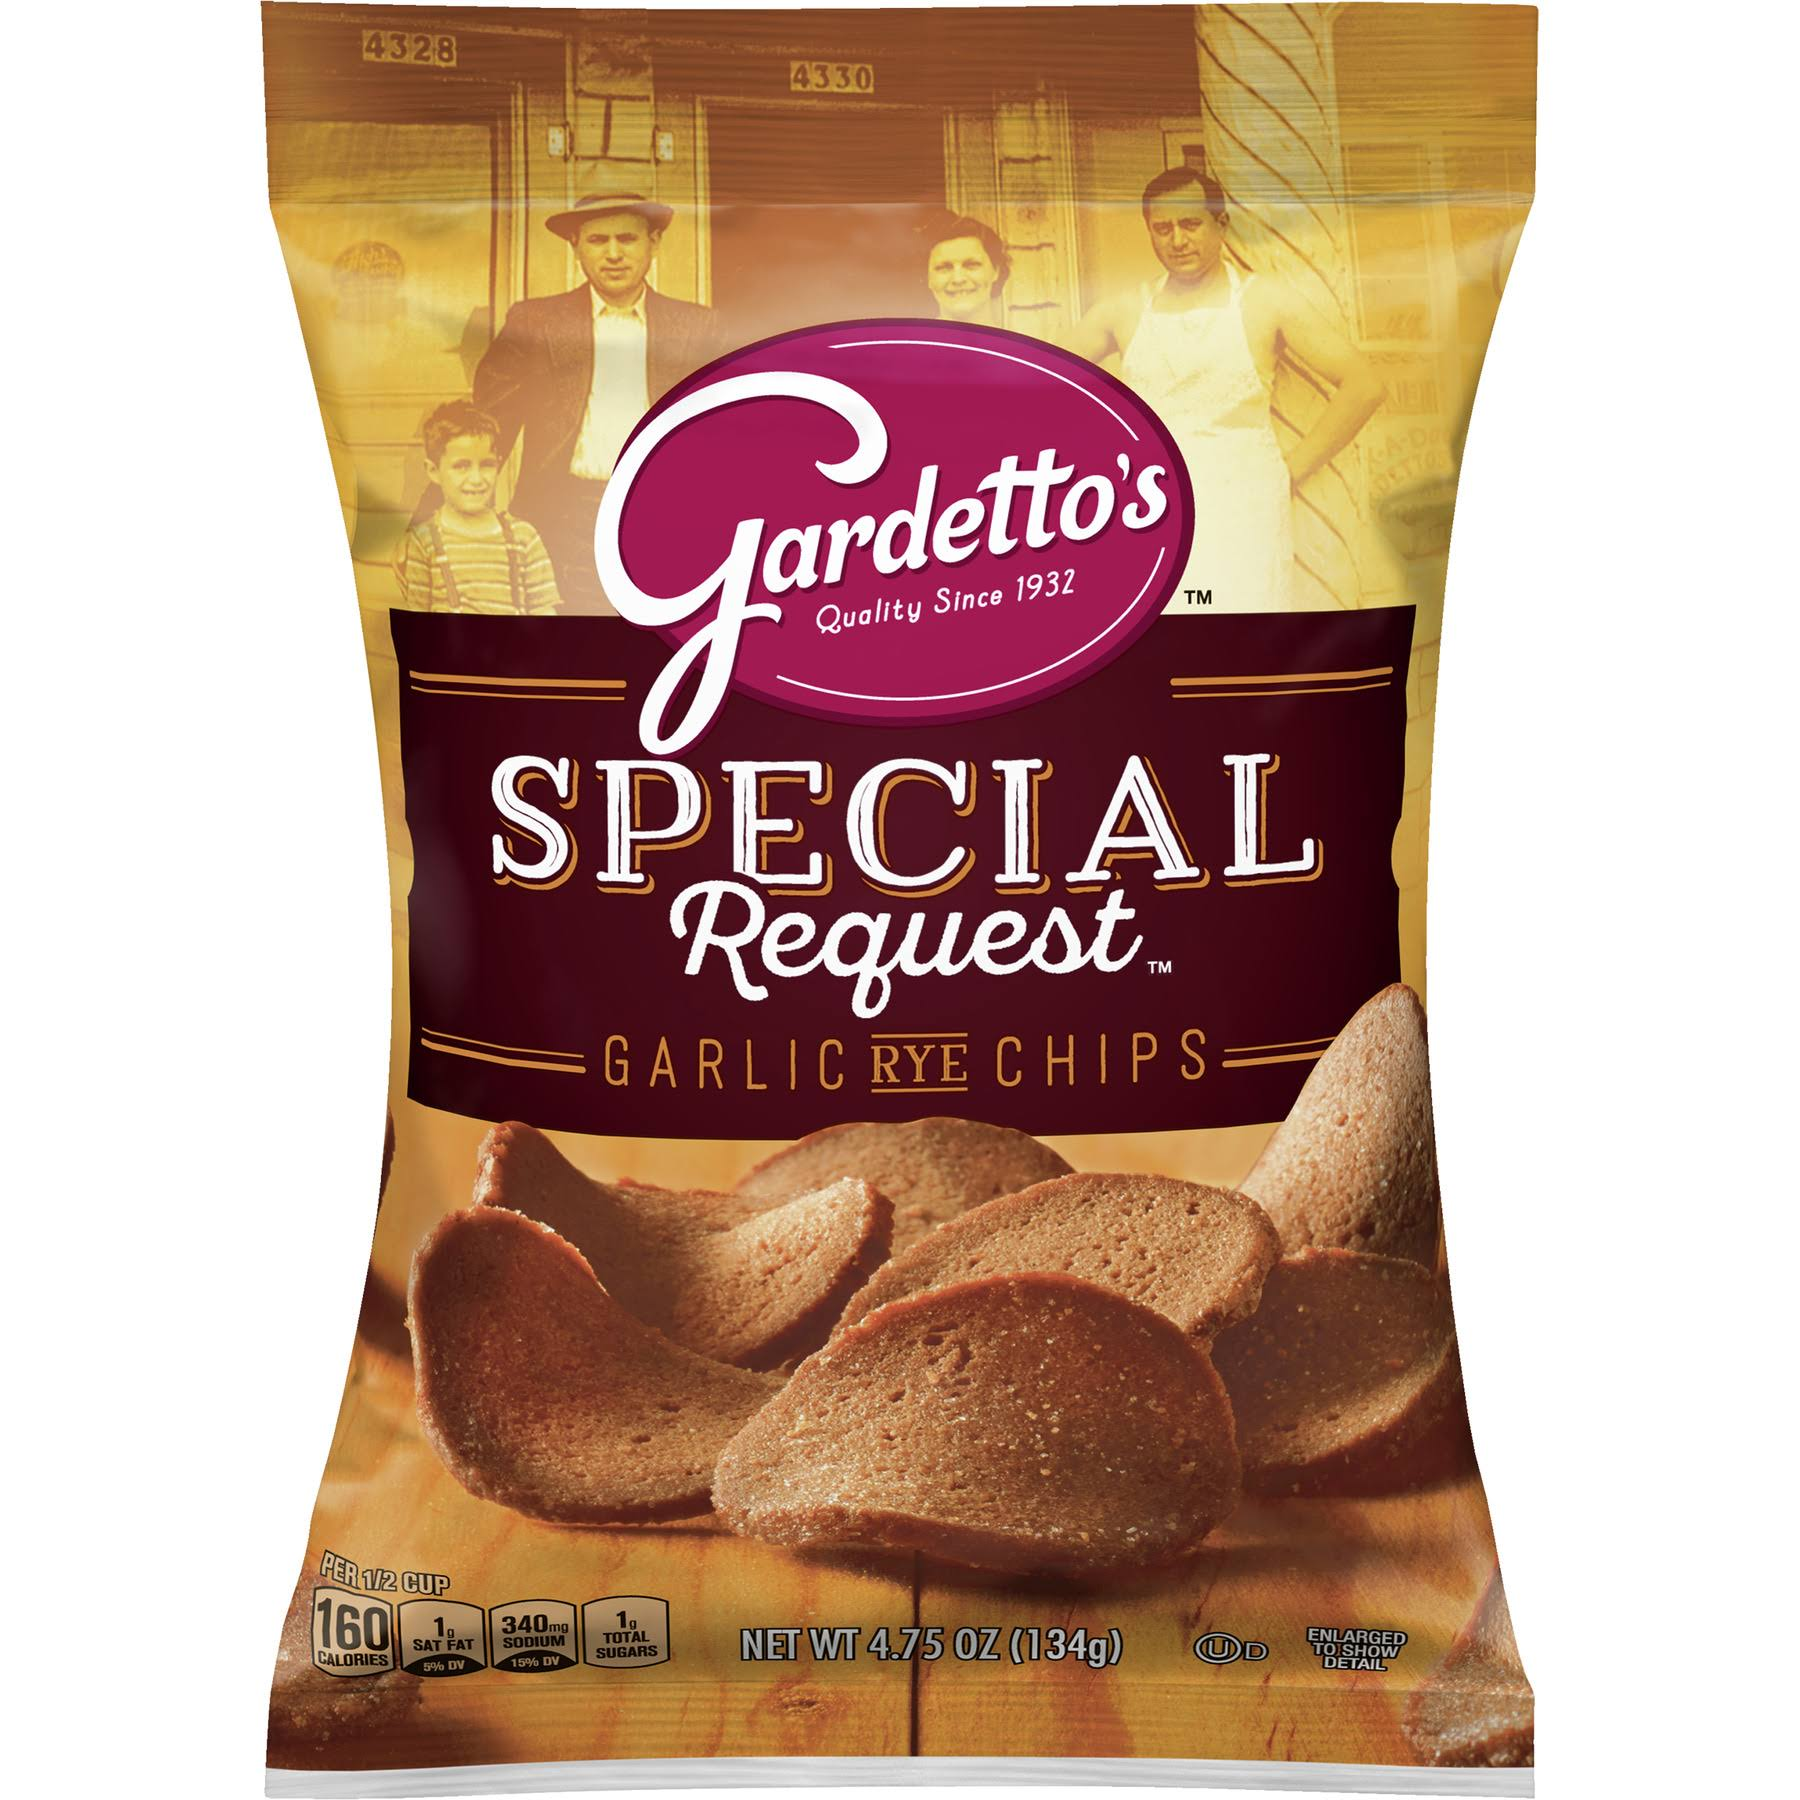 Gardettos Special Request Roasted Garlic Rye Chips - 4.75oz